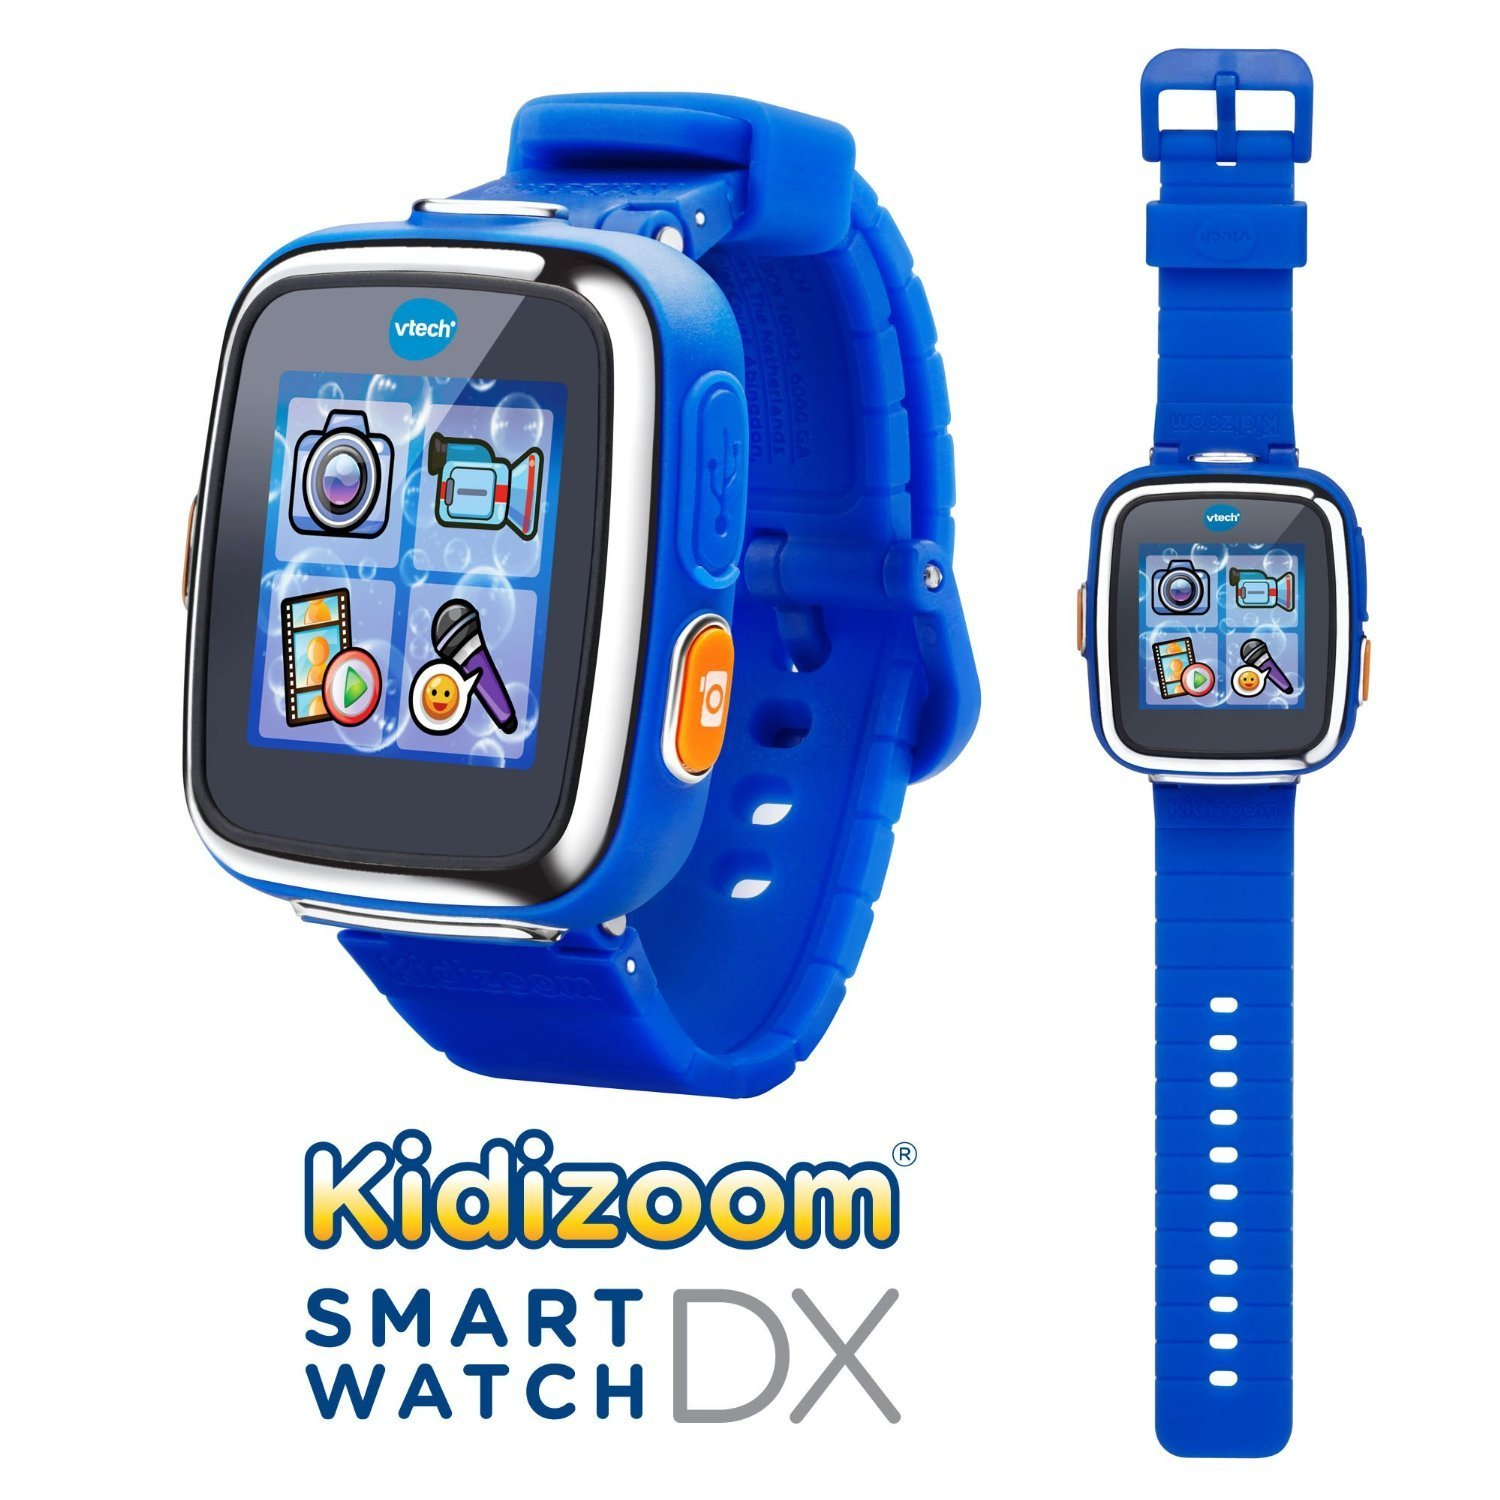 Amazon.com: VTech Kidizoom SmartWatch pulsera DX ...